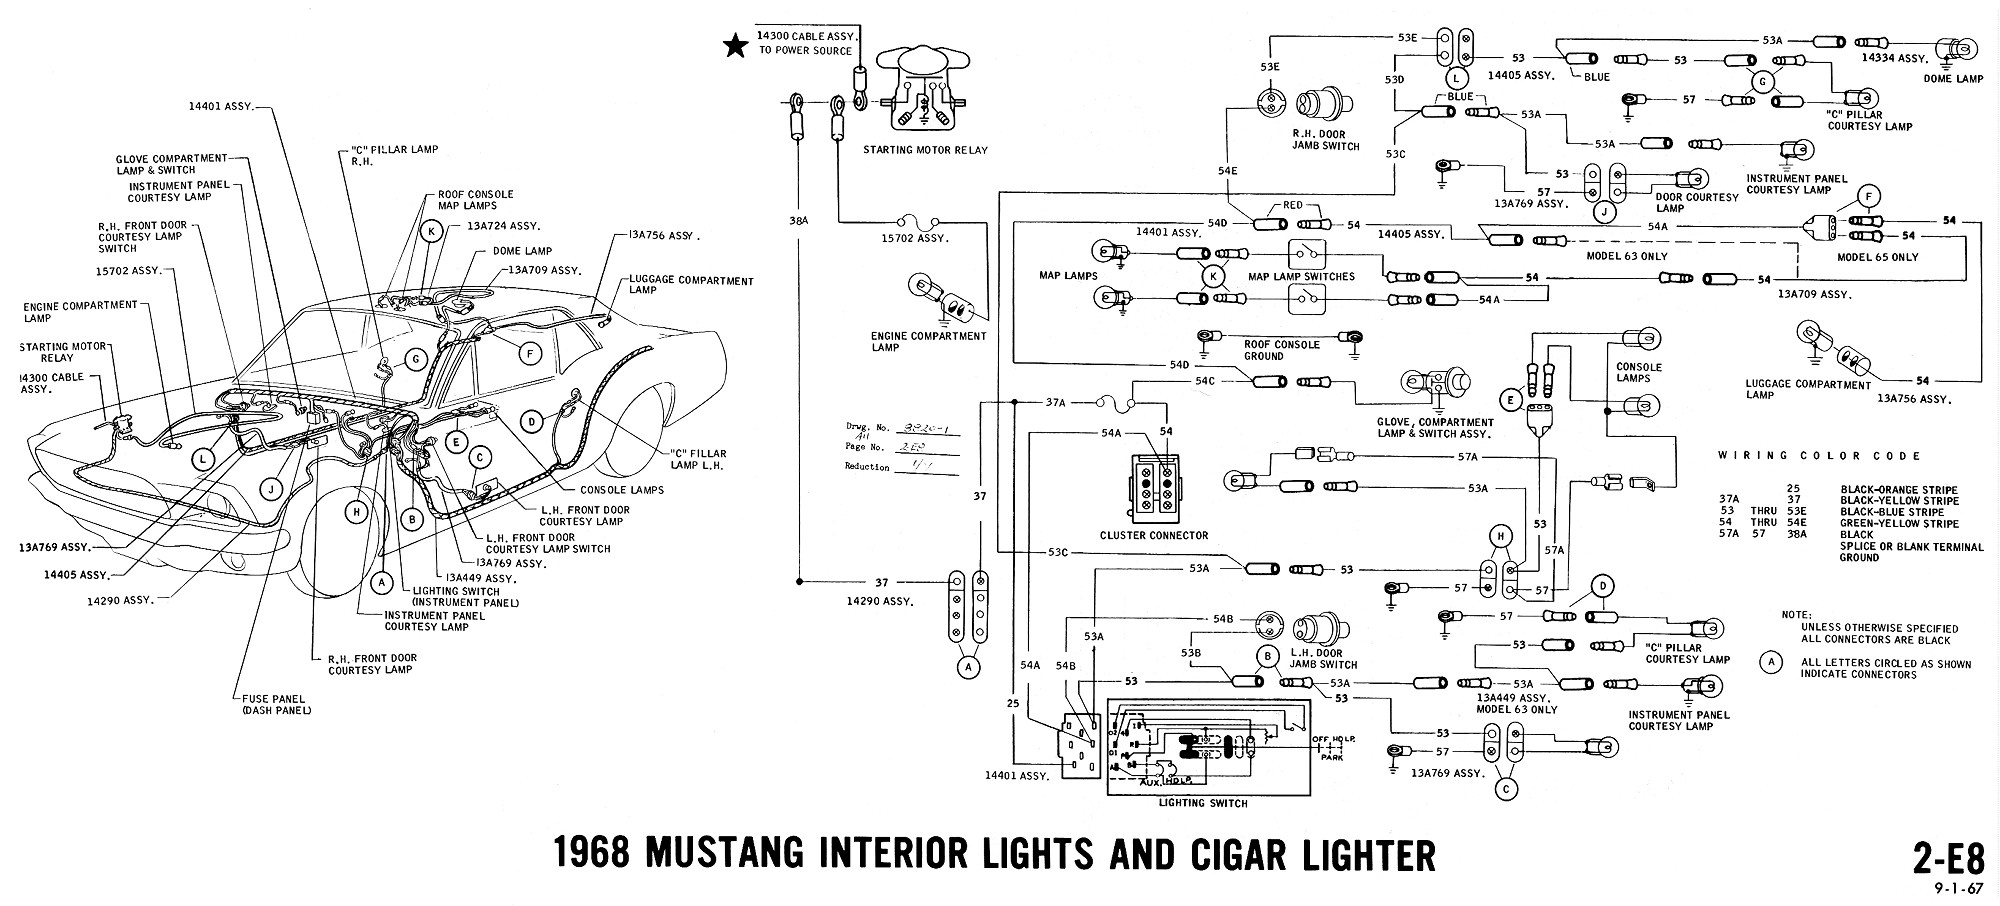 1968 mustang wiring diagram interior lights cigar lighter 68 mustang wiring diagram 1969 mustang wiring diagram online 1969 mustang wiring diagram online at gsmx.co